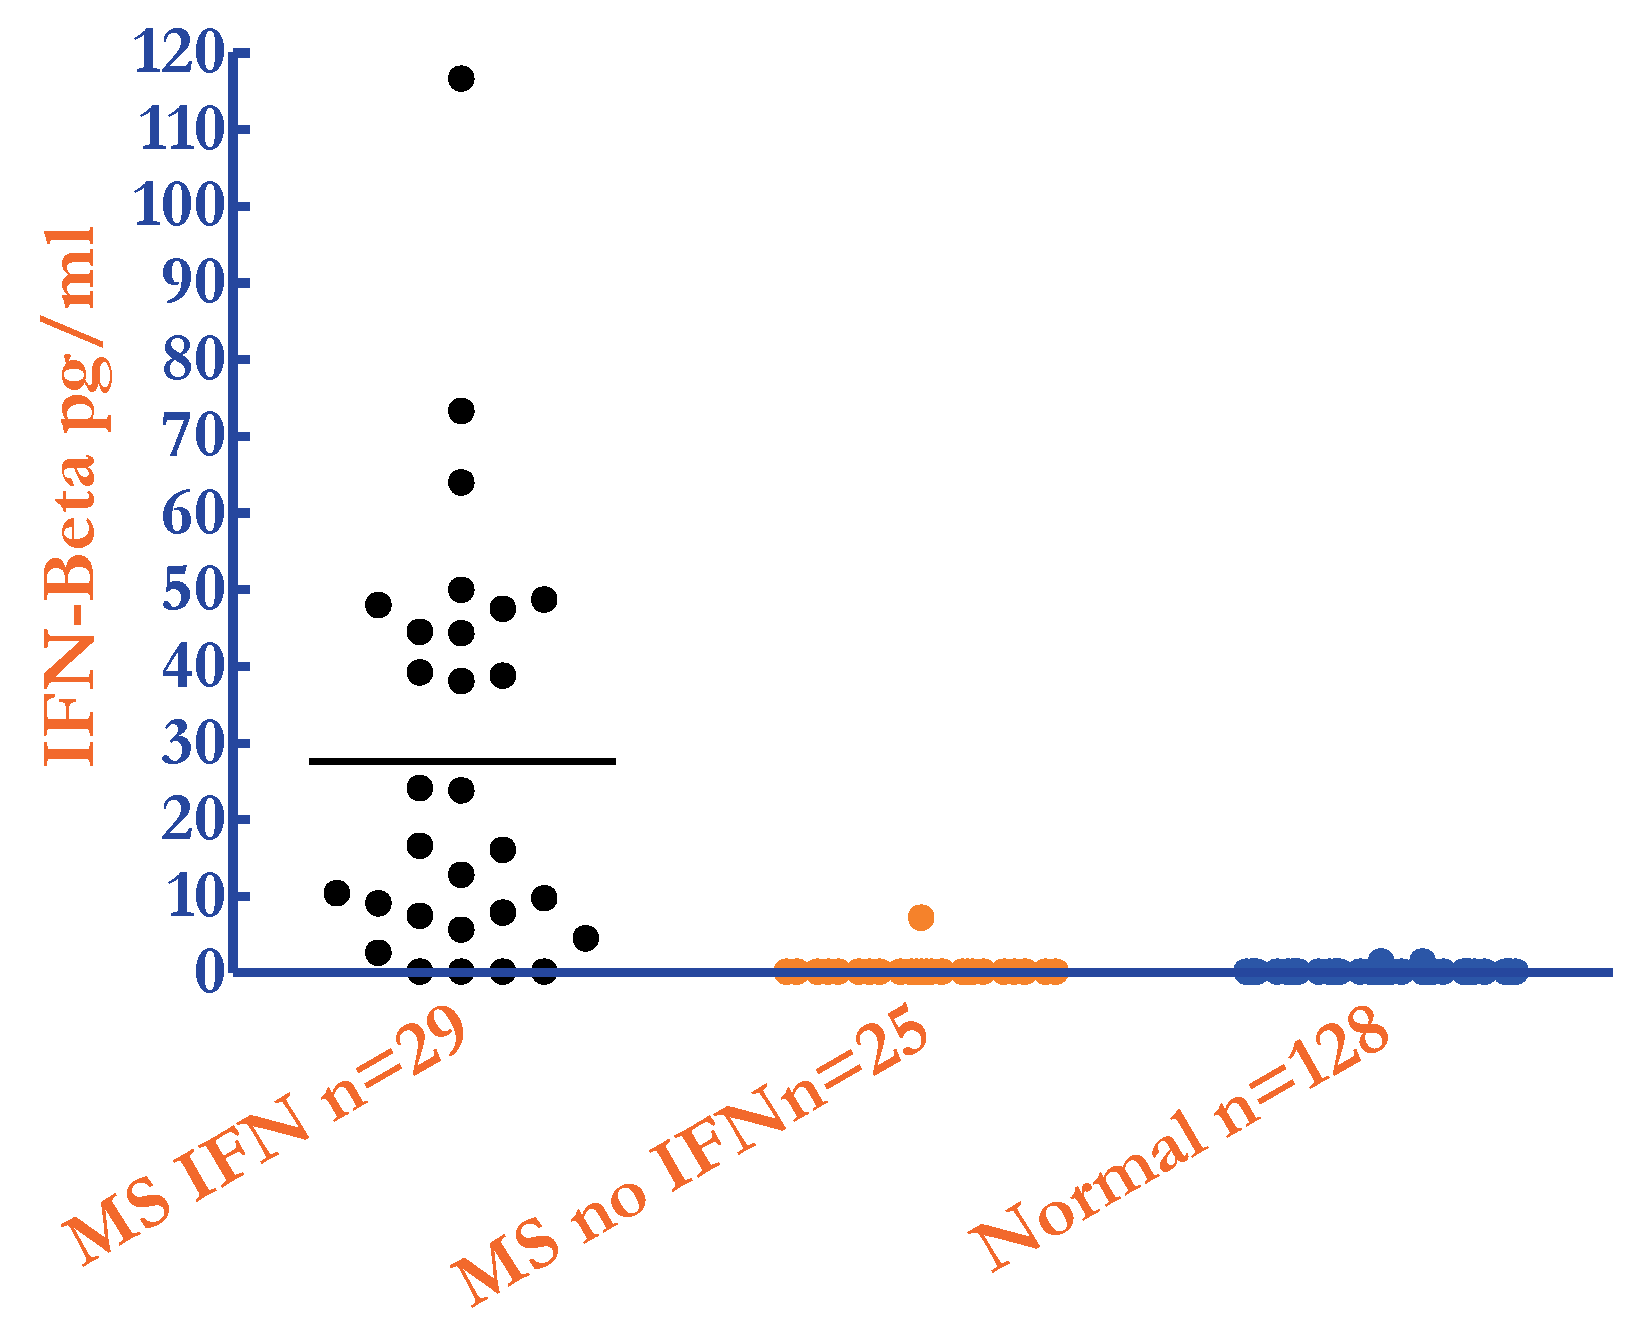 Image of human IFN Beta levels (pg/ml) in serum samples from 128 normal donors & 54 Multiple Sclerosis (MS) patients on & off IFN Beta therapies quantified by PBL's High Sensitivity Human Interferon Beta ELISA kit